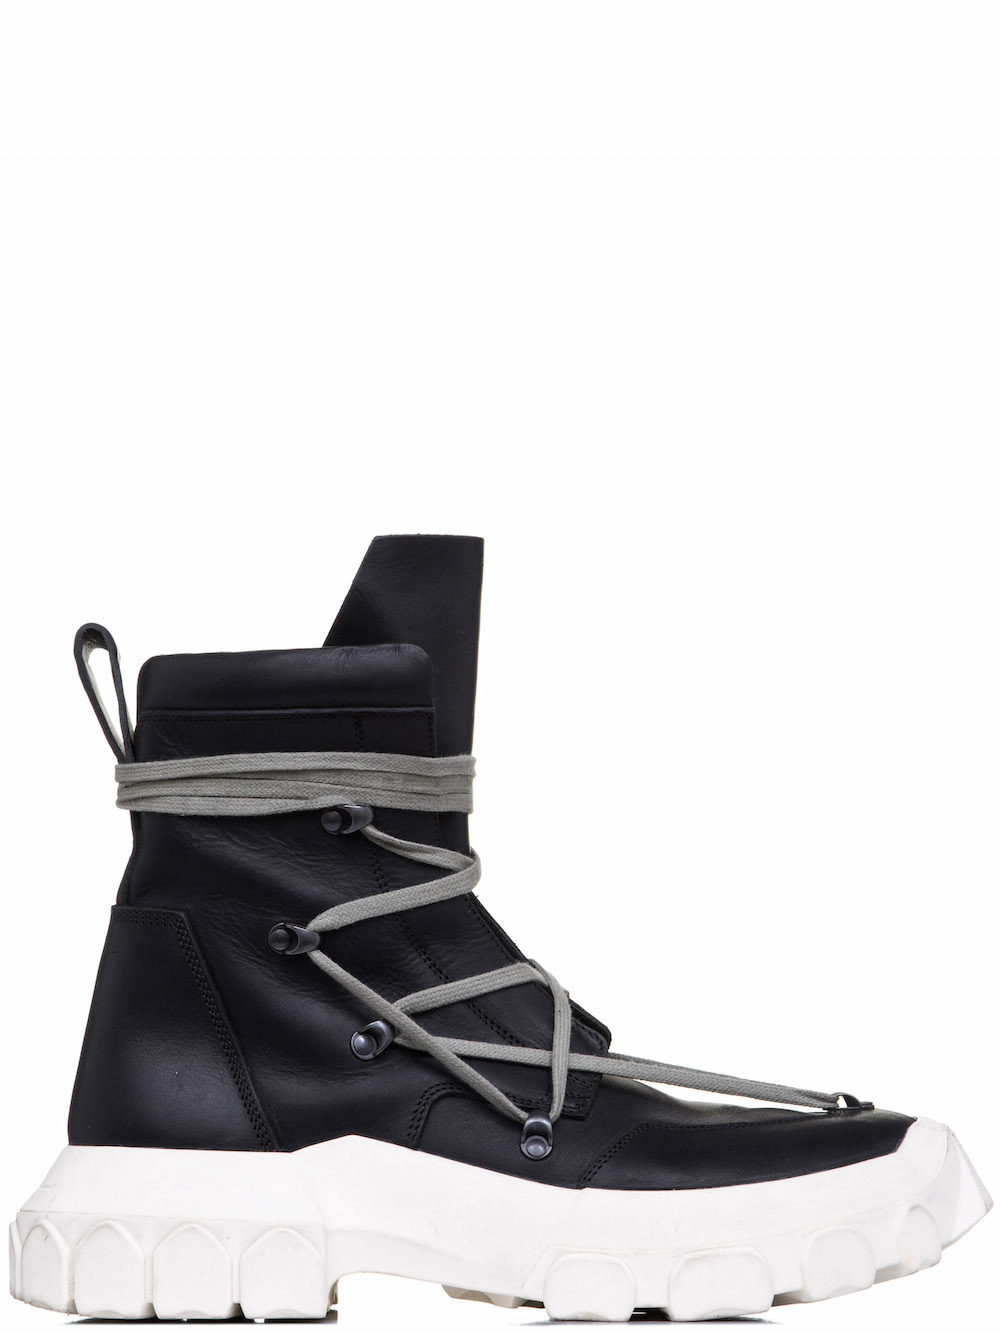 Rick Owens Black & White Hiking Lace-Up Boots C3qIwiG2T